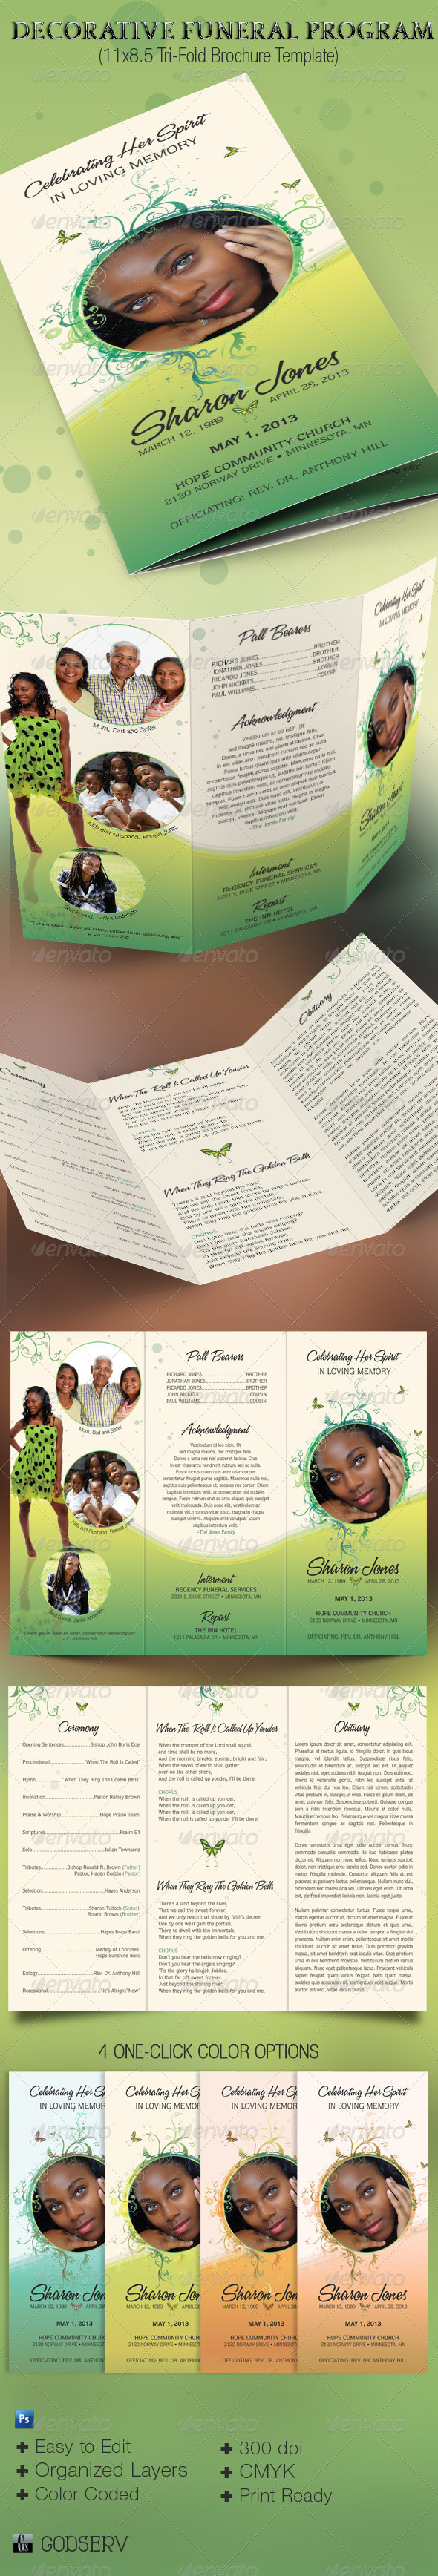 GraphicRiver Decorative Tri-Fold Funeral Program